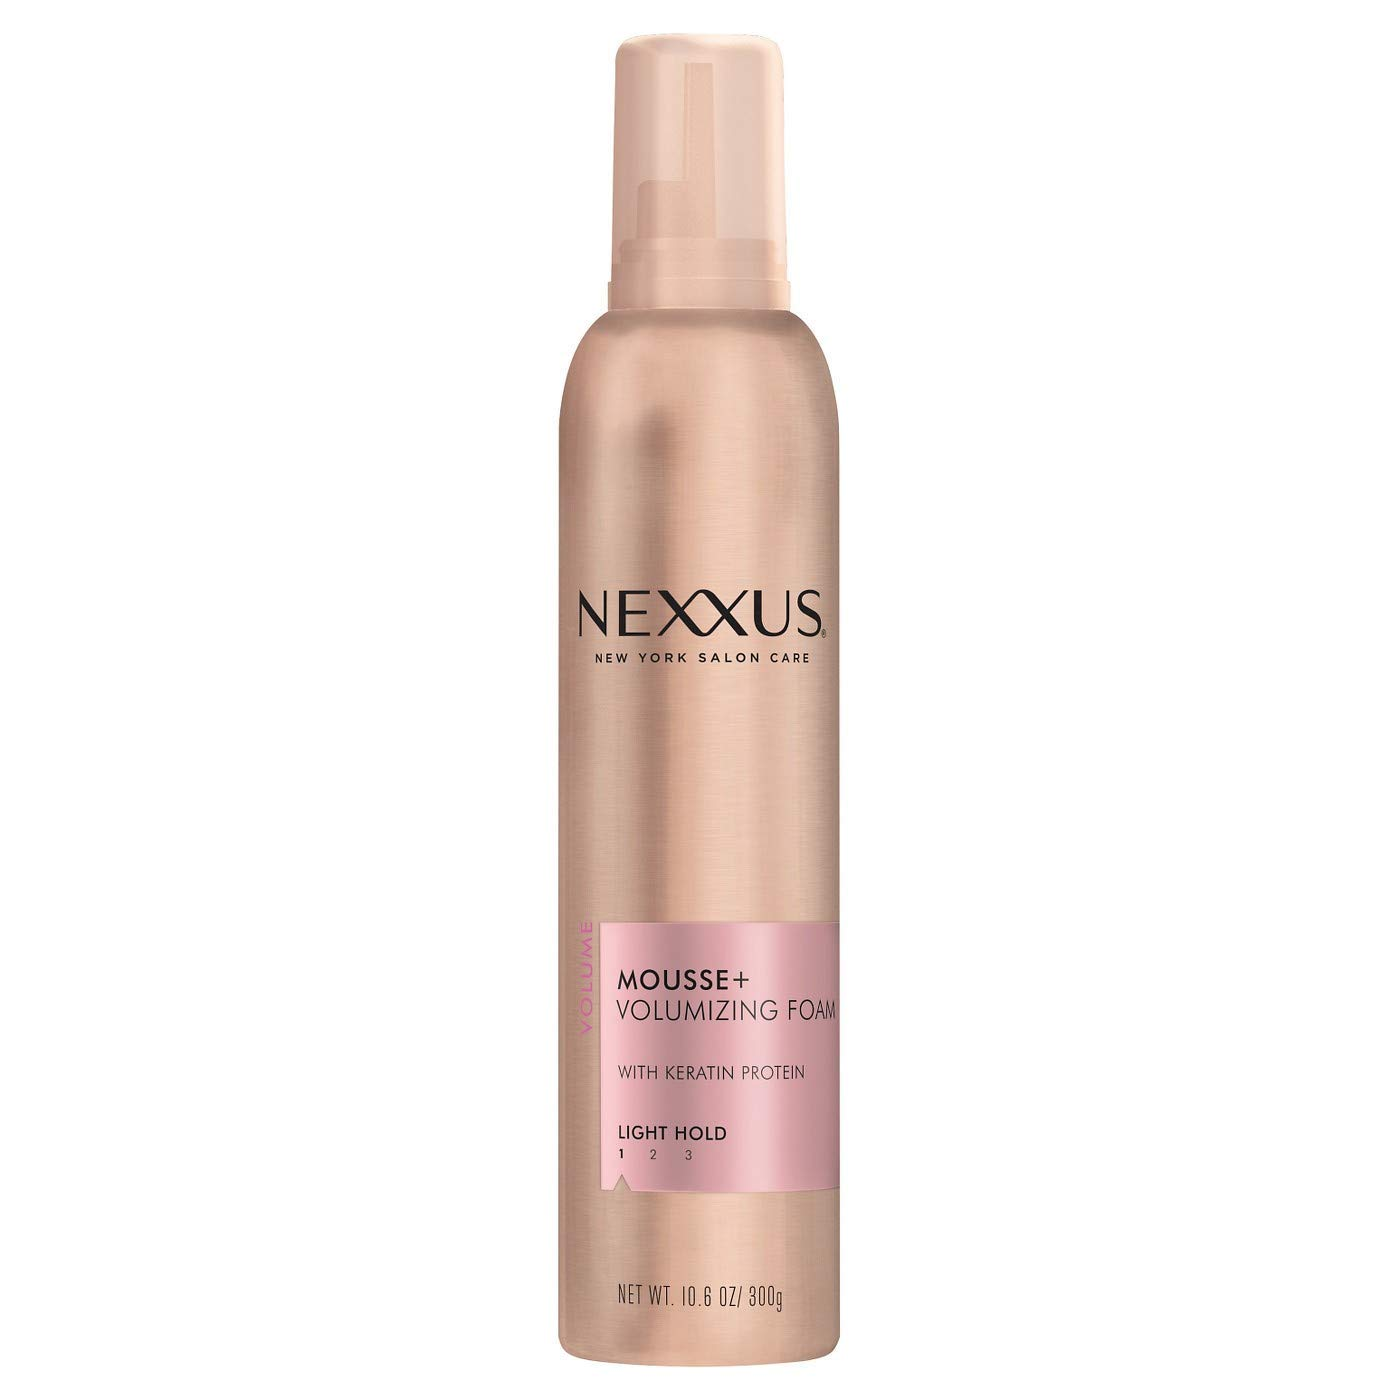 Nexxus Volumizing Foam Styler Mousse Plus, 10.6 oz, Pack of 6 by Nexxus